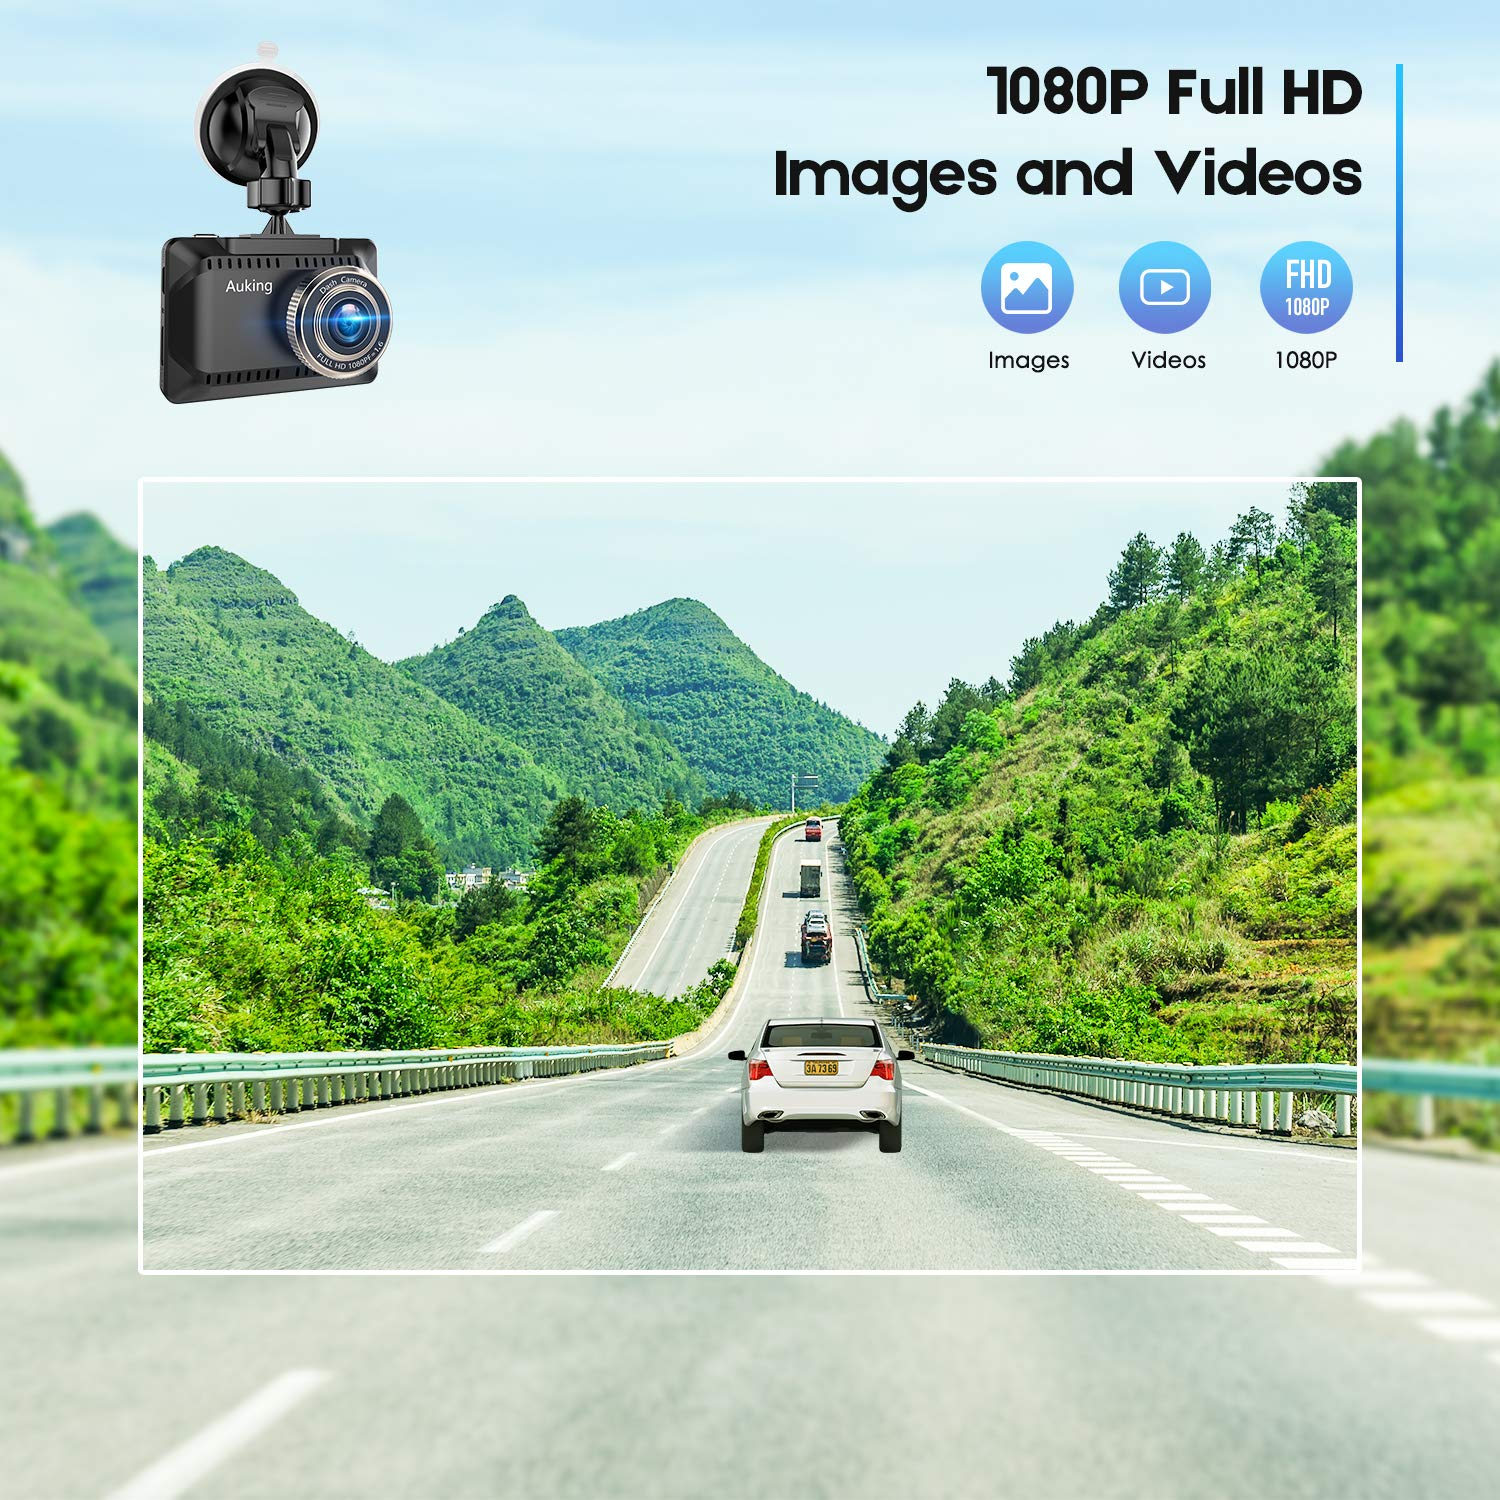 AuKing WiFi Dash Cam 1080P Full HD Dash Camera for Cars 2.45 Inch IPS Screen Car Camera Driving Recorder with Phone APP, G-Sensor, 170 Wide Angle, WDR, Loop Recording, Night Vision, Parking Monitor